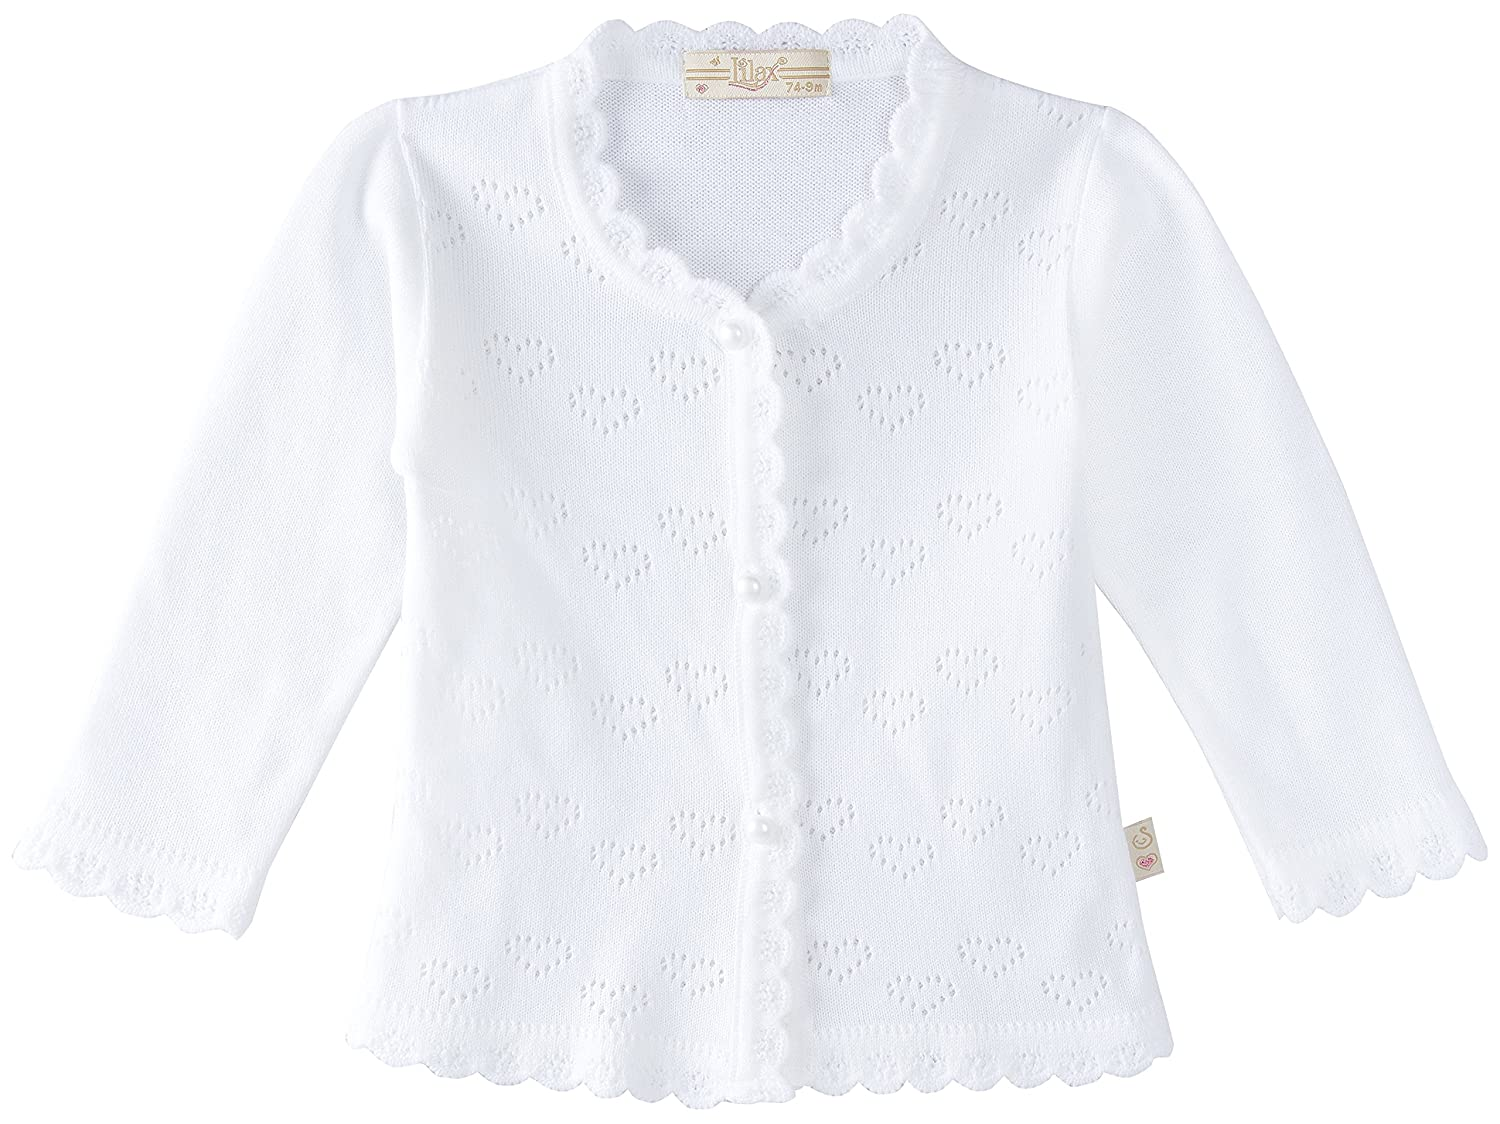 Lilax Baby Girls' Little Hearts Knit Cardigan Sweater 1075